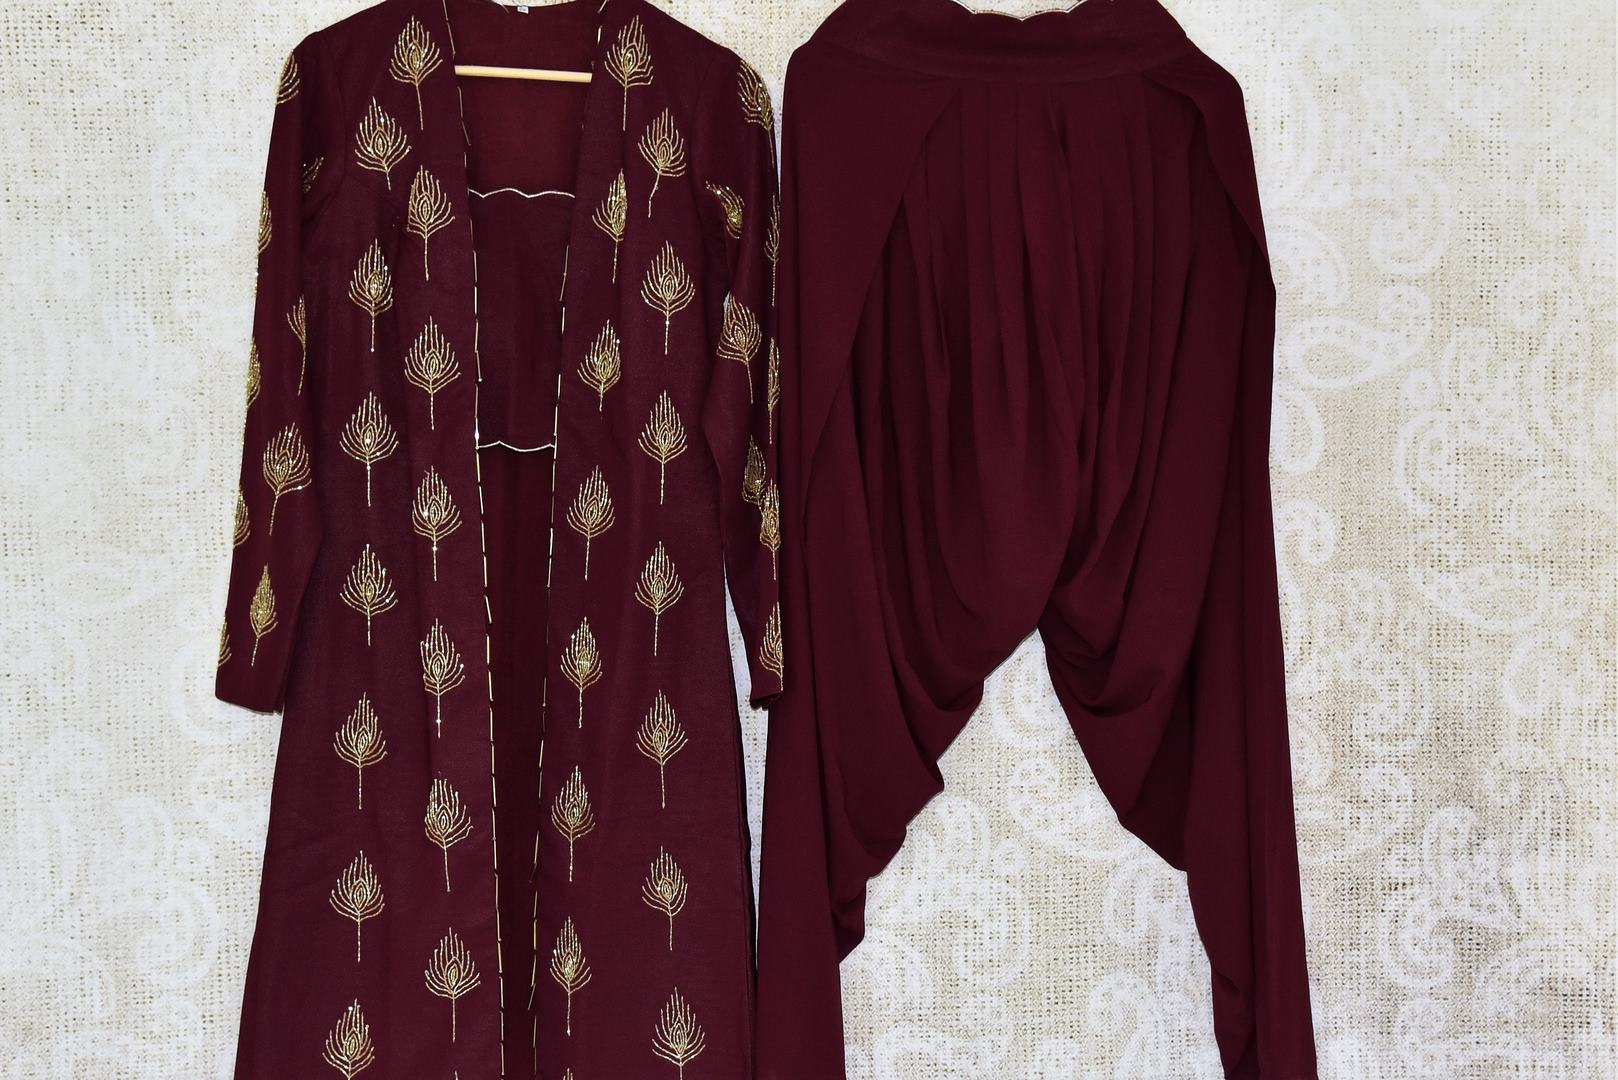 Buy wine color georgette suit with hand embroidery online in USA. If you are fond of Indian fashion then you must visit Pure Elegance Indian clothing store in USA. We have a splendid collection of Indian designer dresses, Indowestern dresses and clothing here for you on our shelves. -full view 2